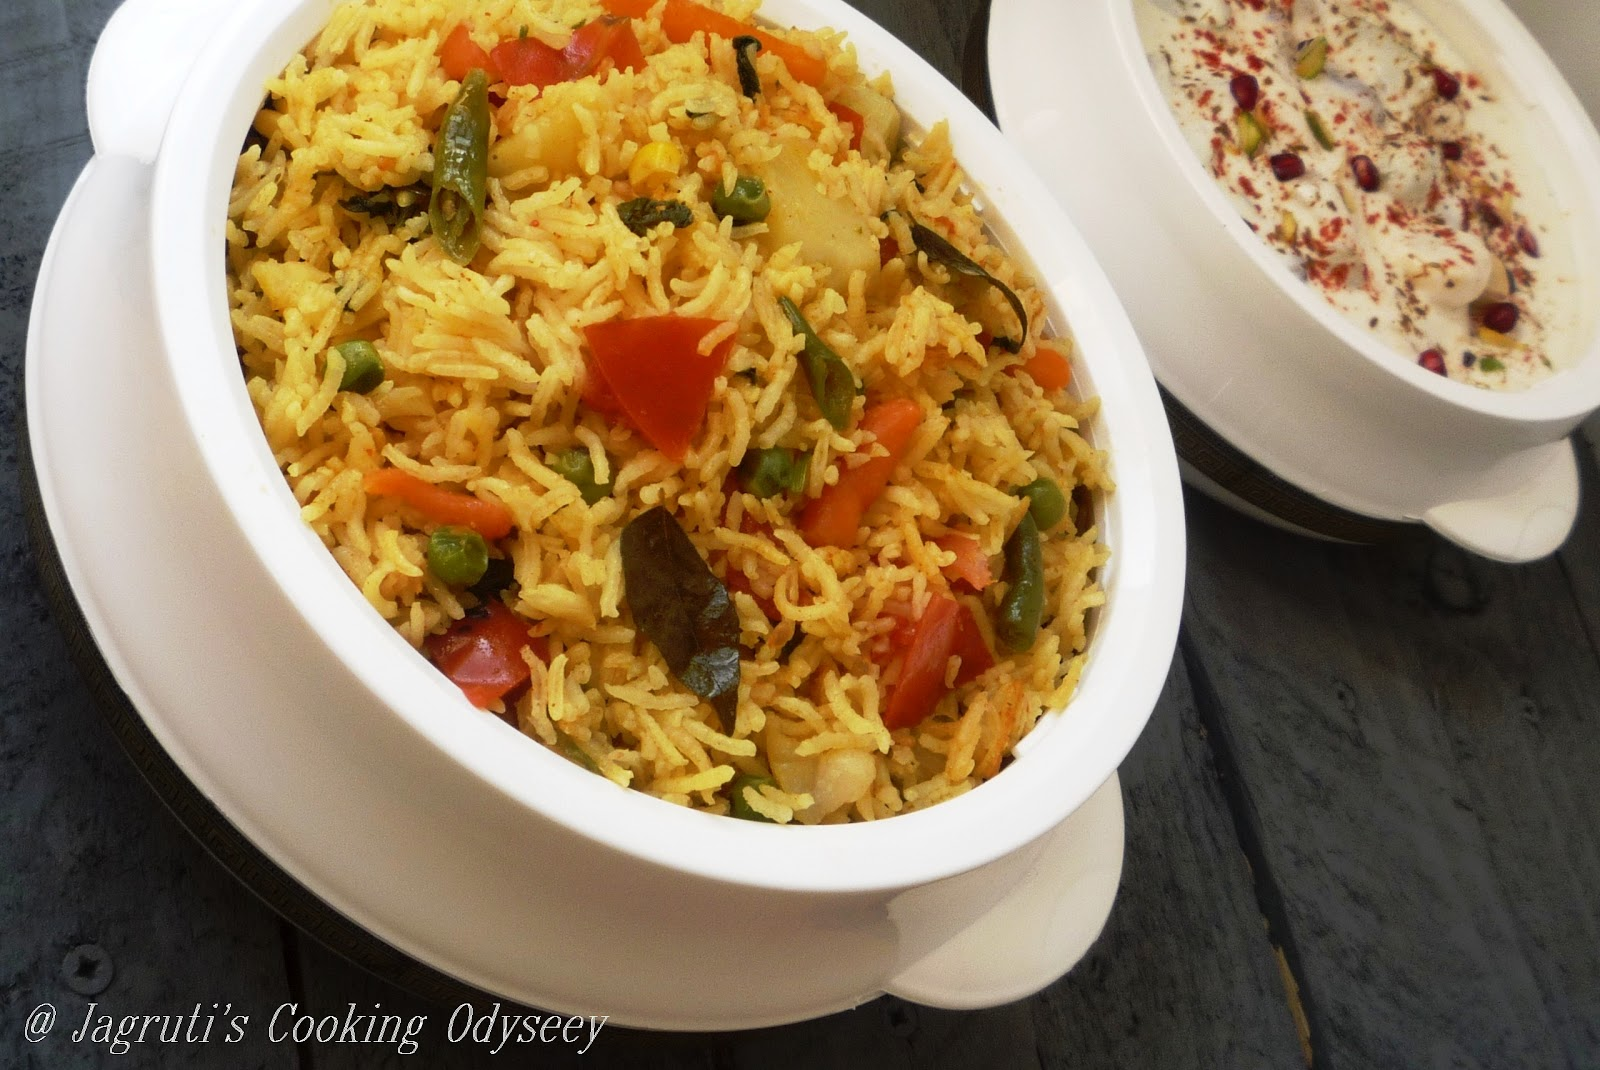 ... Cooking Odyssey: Green Peas and Potato Rice Pilaf ~ Mum's style